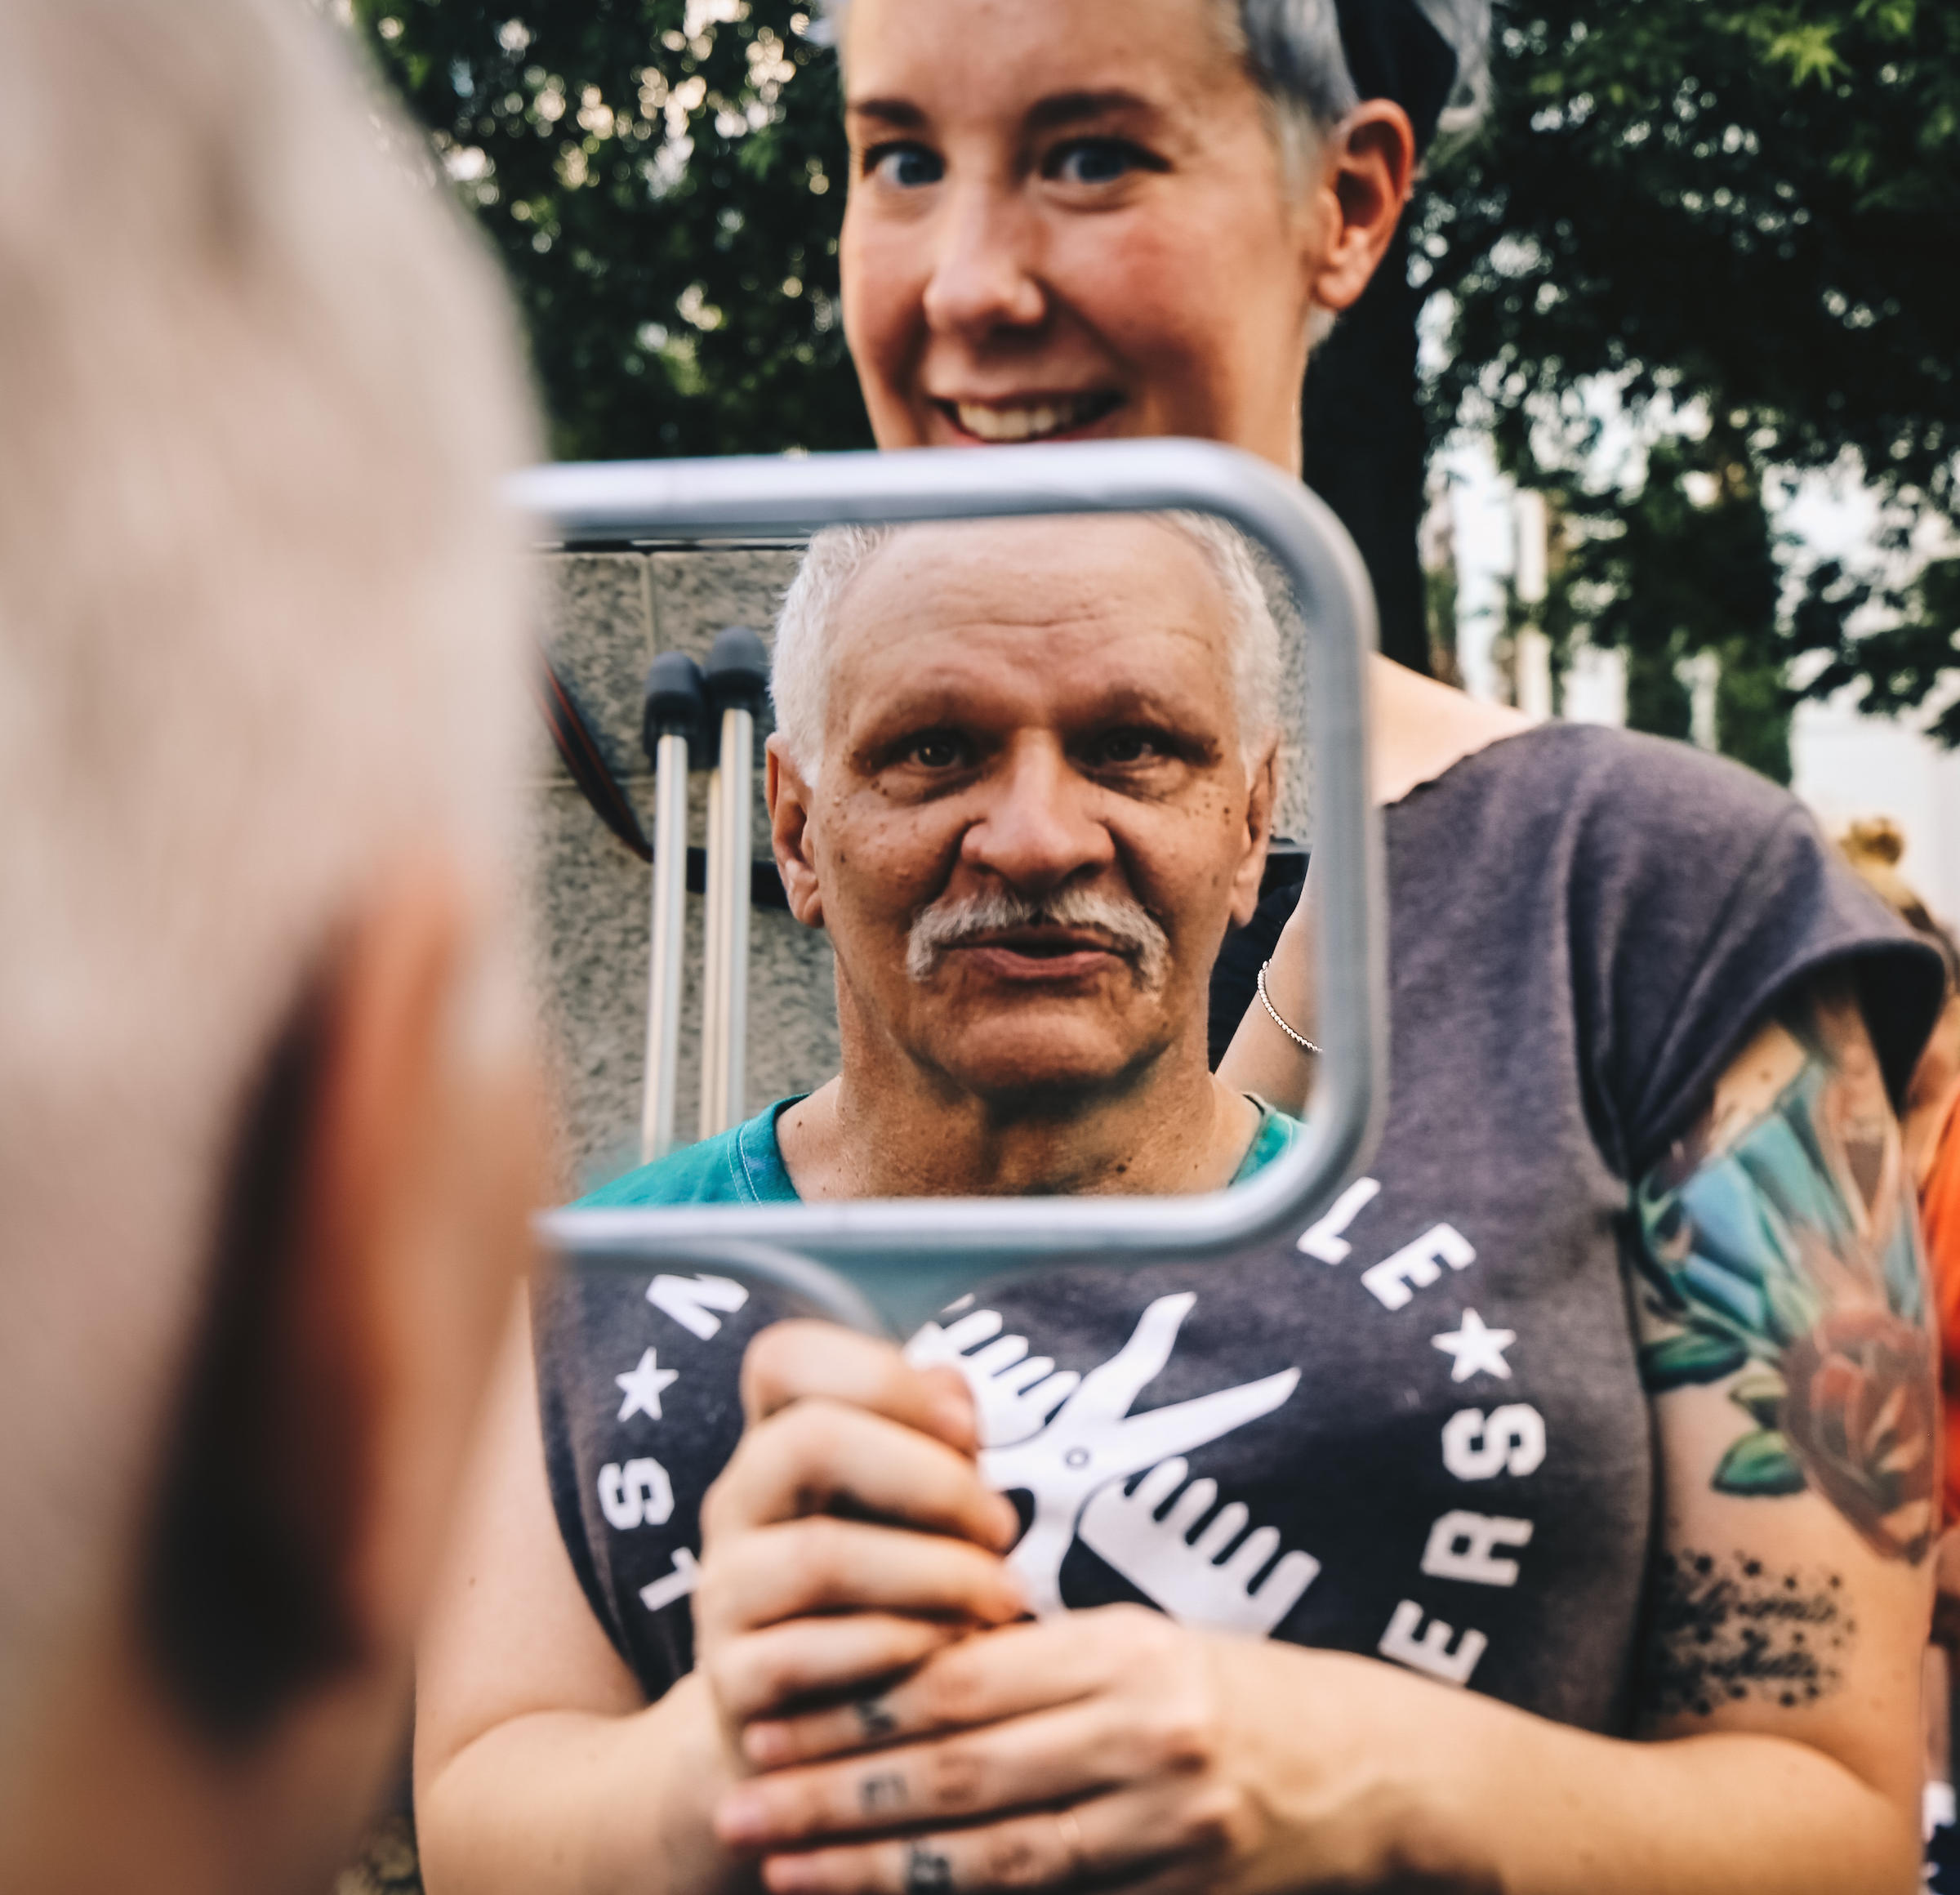 For Nashville Barbers Homeless Clients A Free Haircut Is More Than